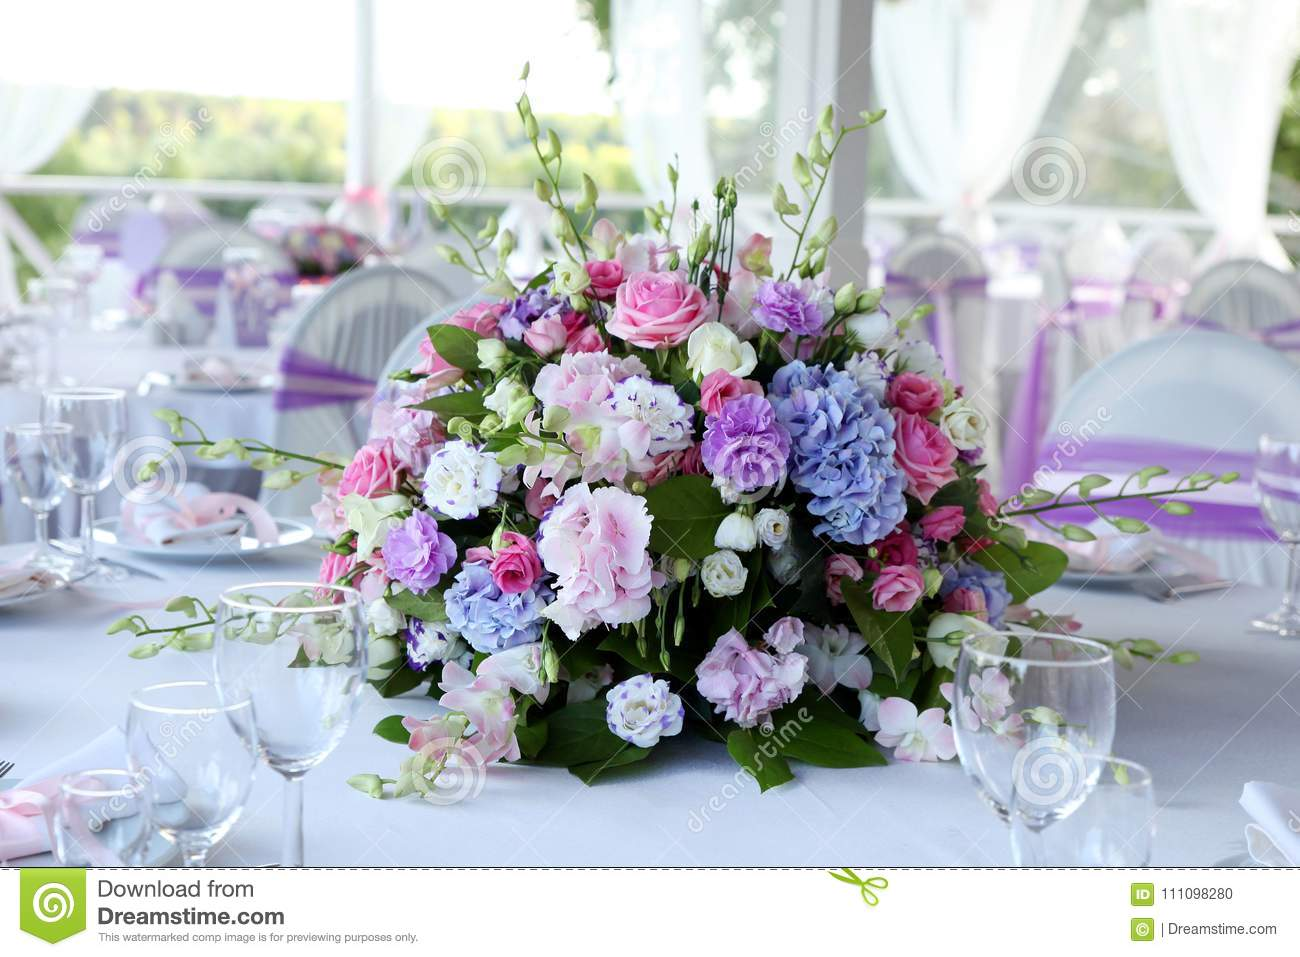 Very Beautiful Bouquet Of Flowers For Wedding Celebrations Stock